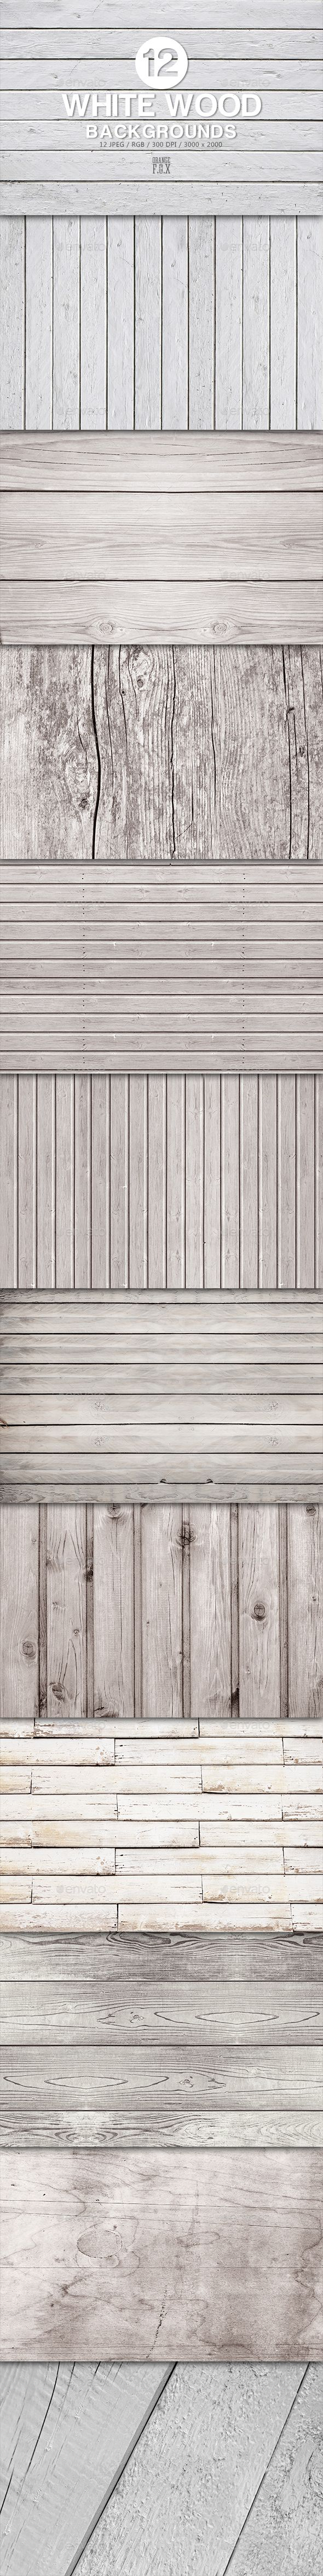 12 White Wood Backgrounds — Photoshop PSD #desk #white • Available here → https://graphicriver.net/item/12-white-wood-backgrounds/13318887?ref=pxcr